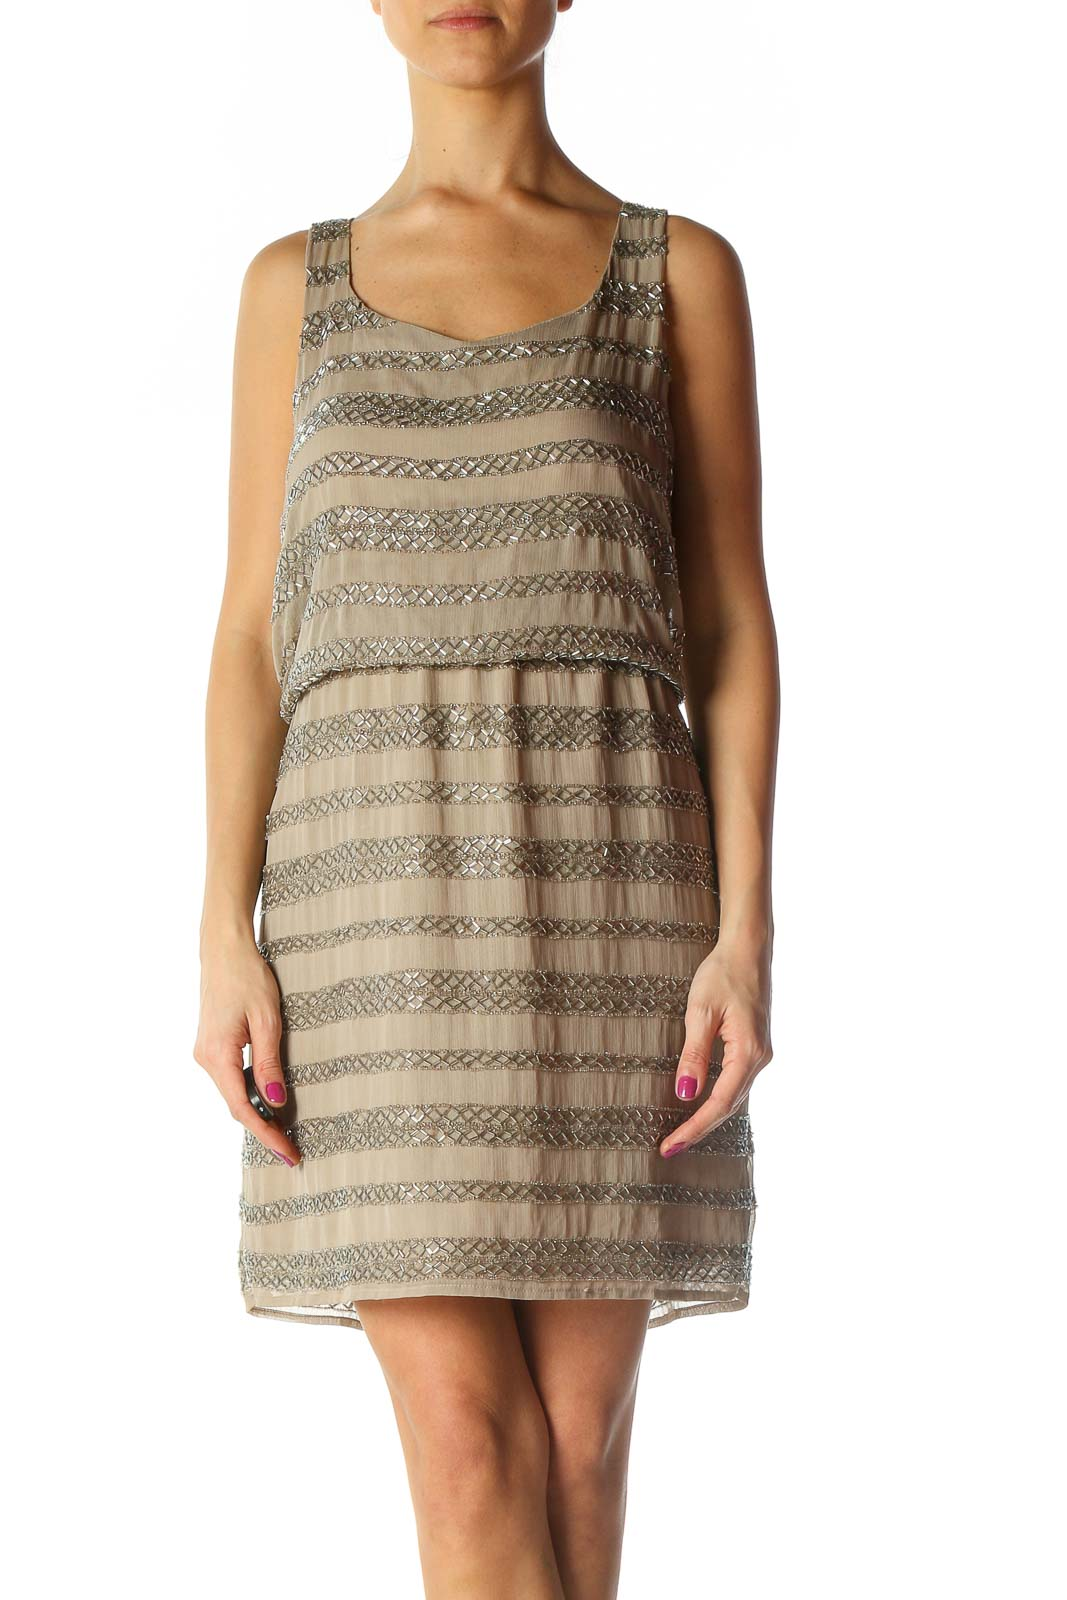 Beige Beaded Chic A-Line Dress Front